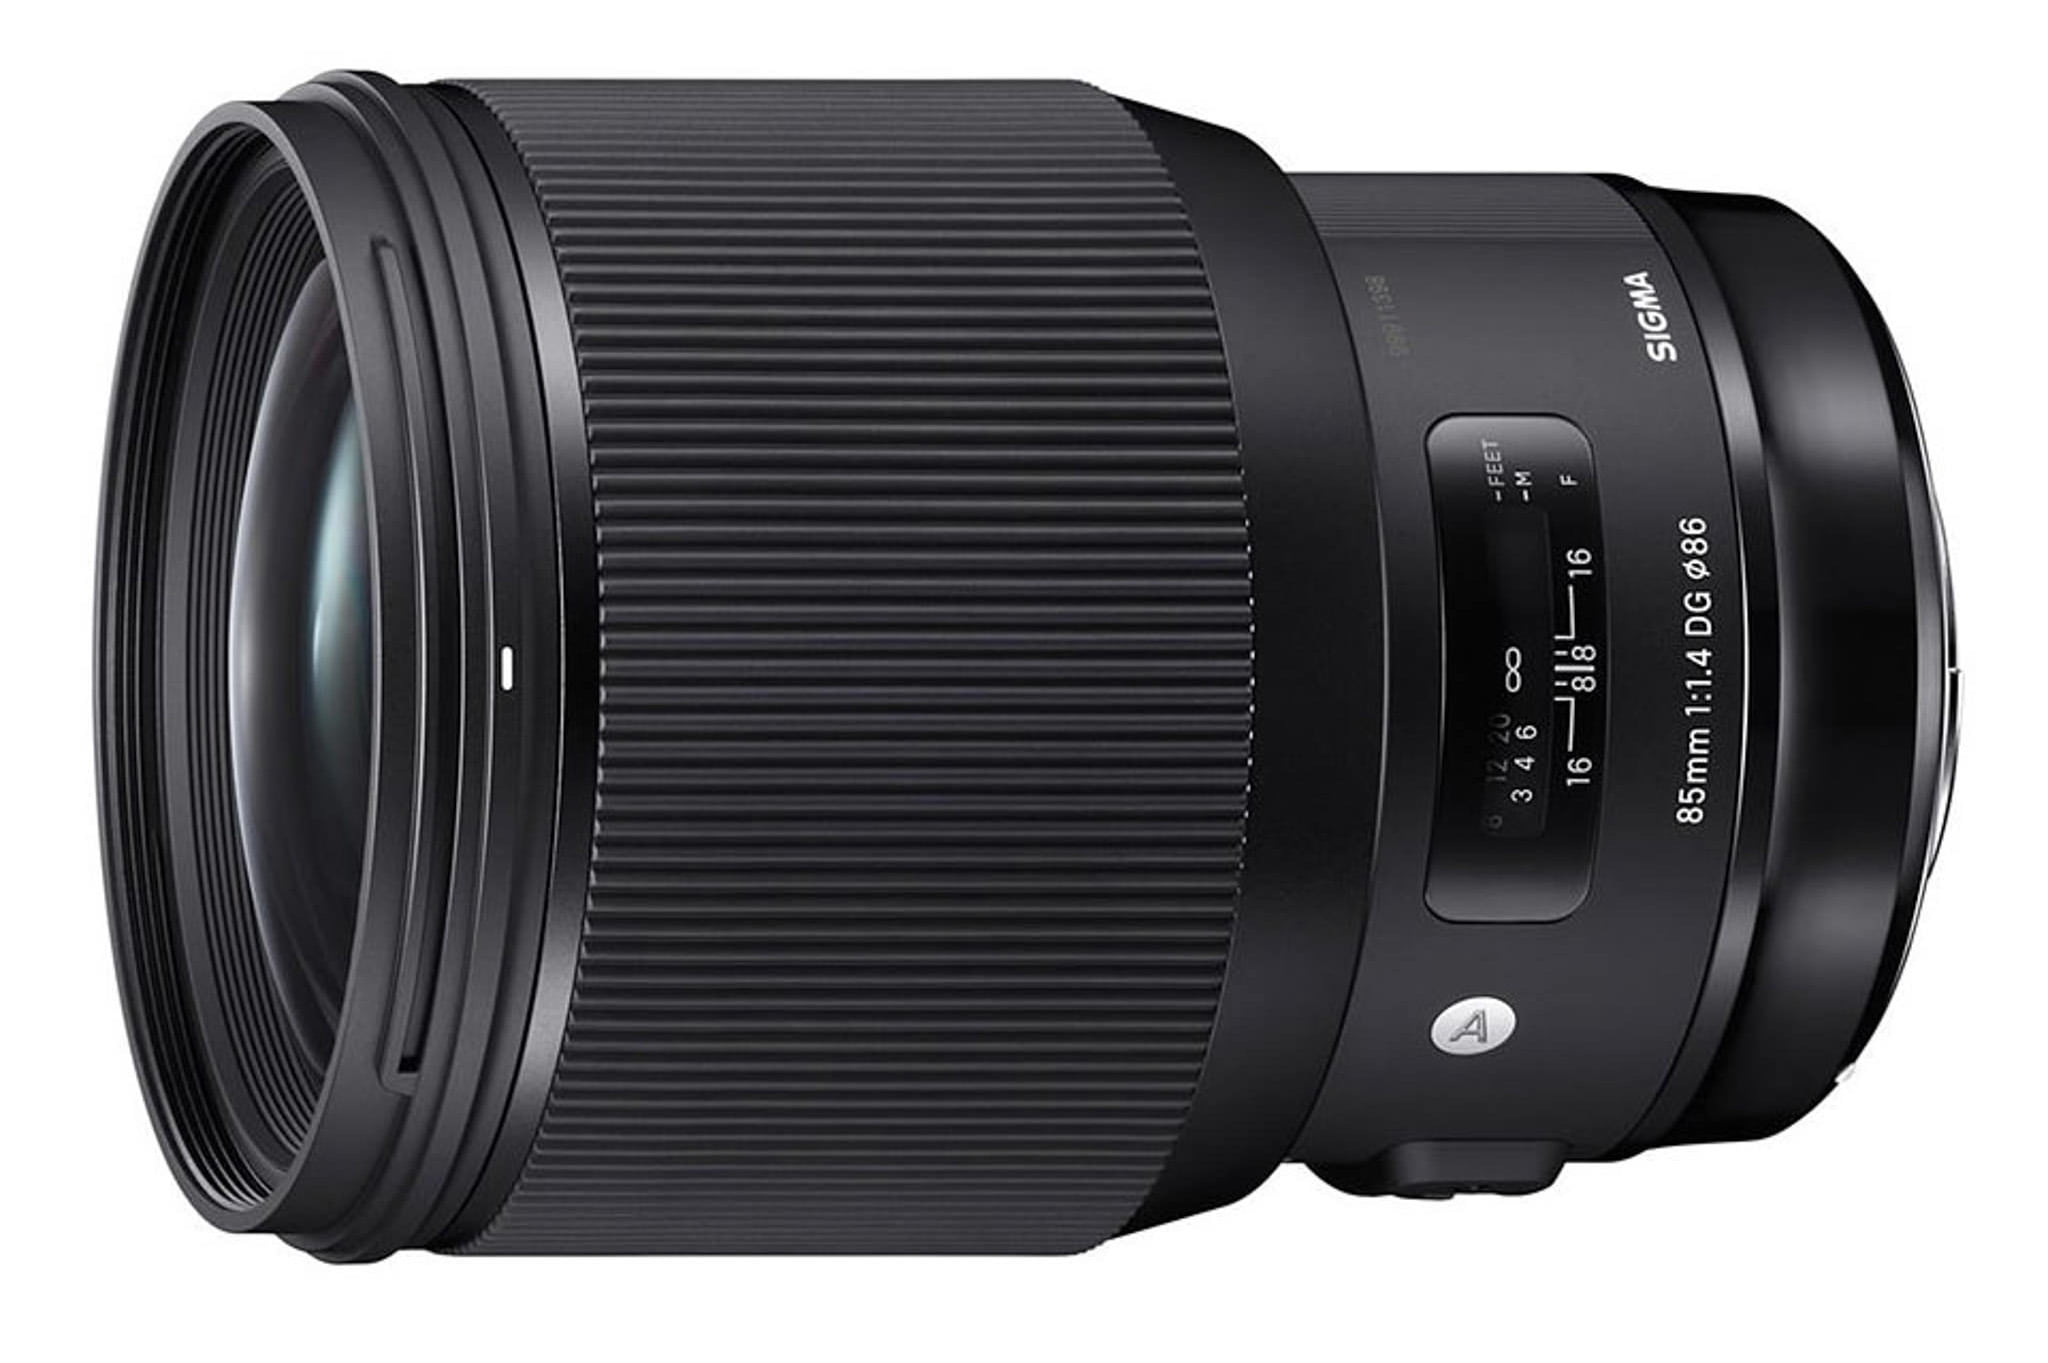 Sigma 85mm F1.4 ART review vs Wedding Photography 1